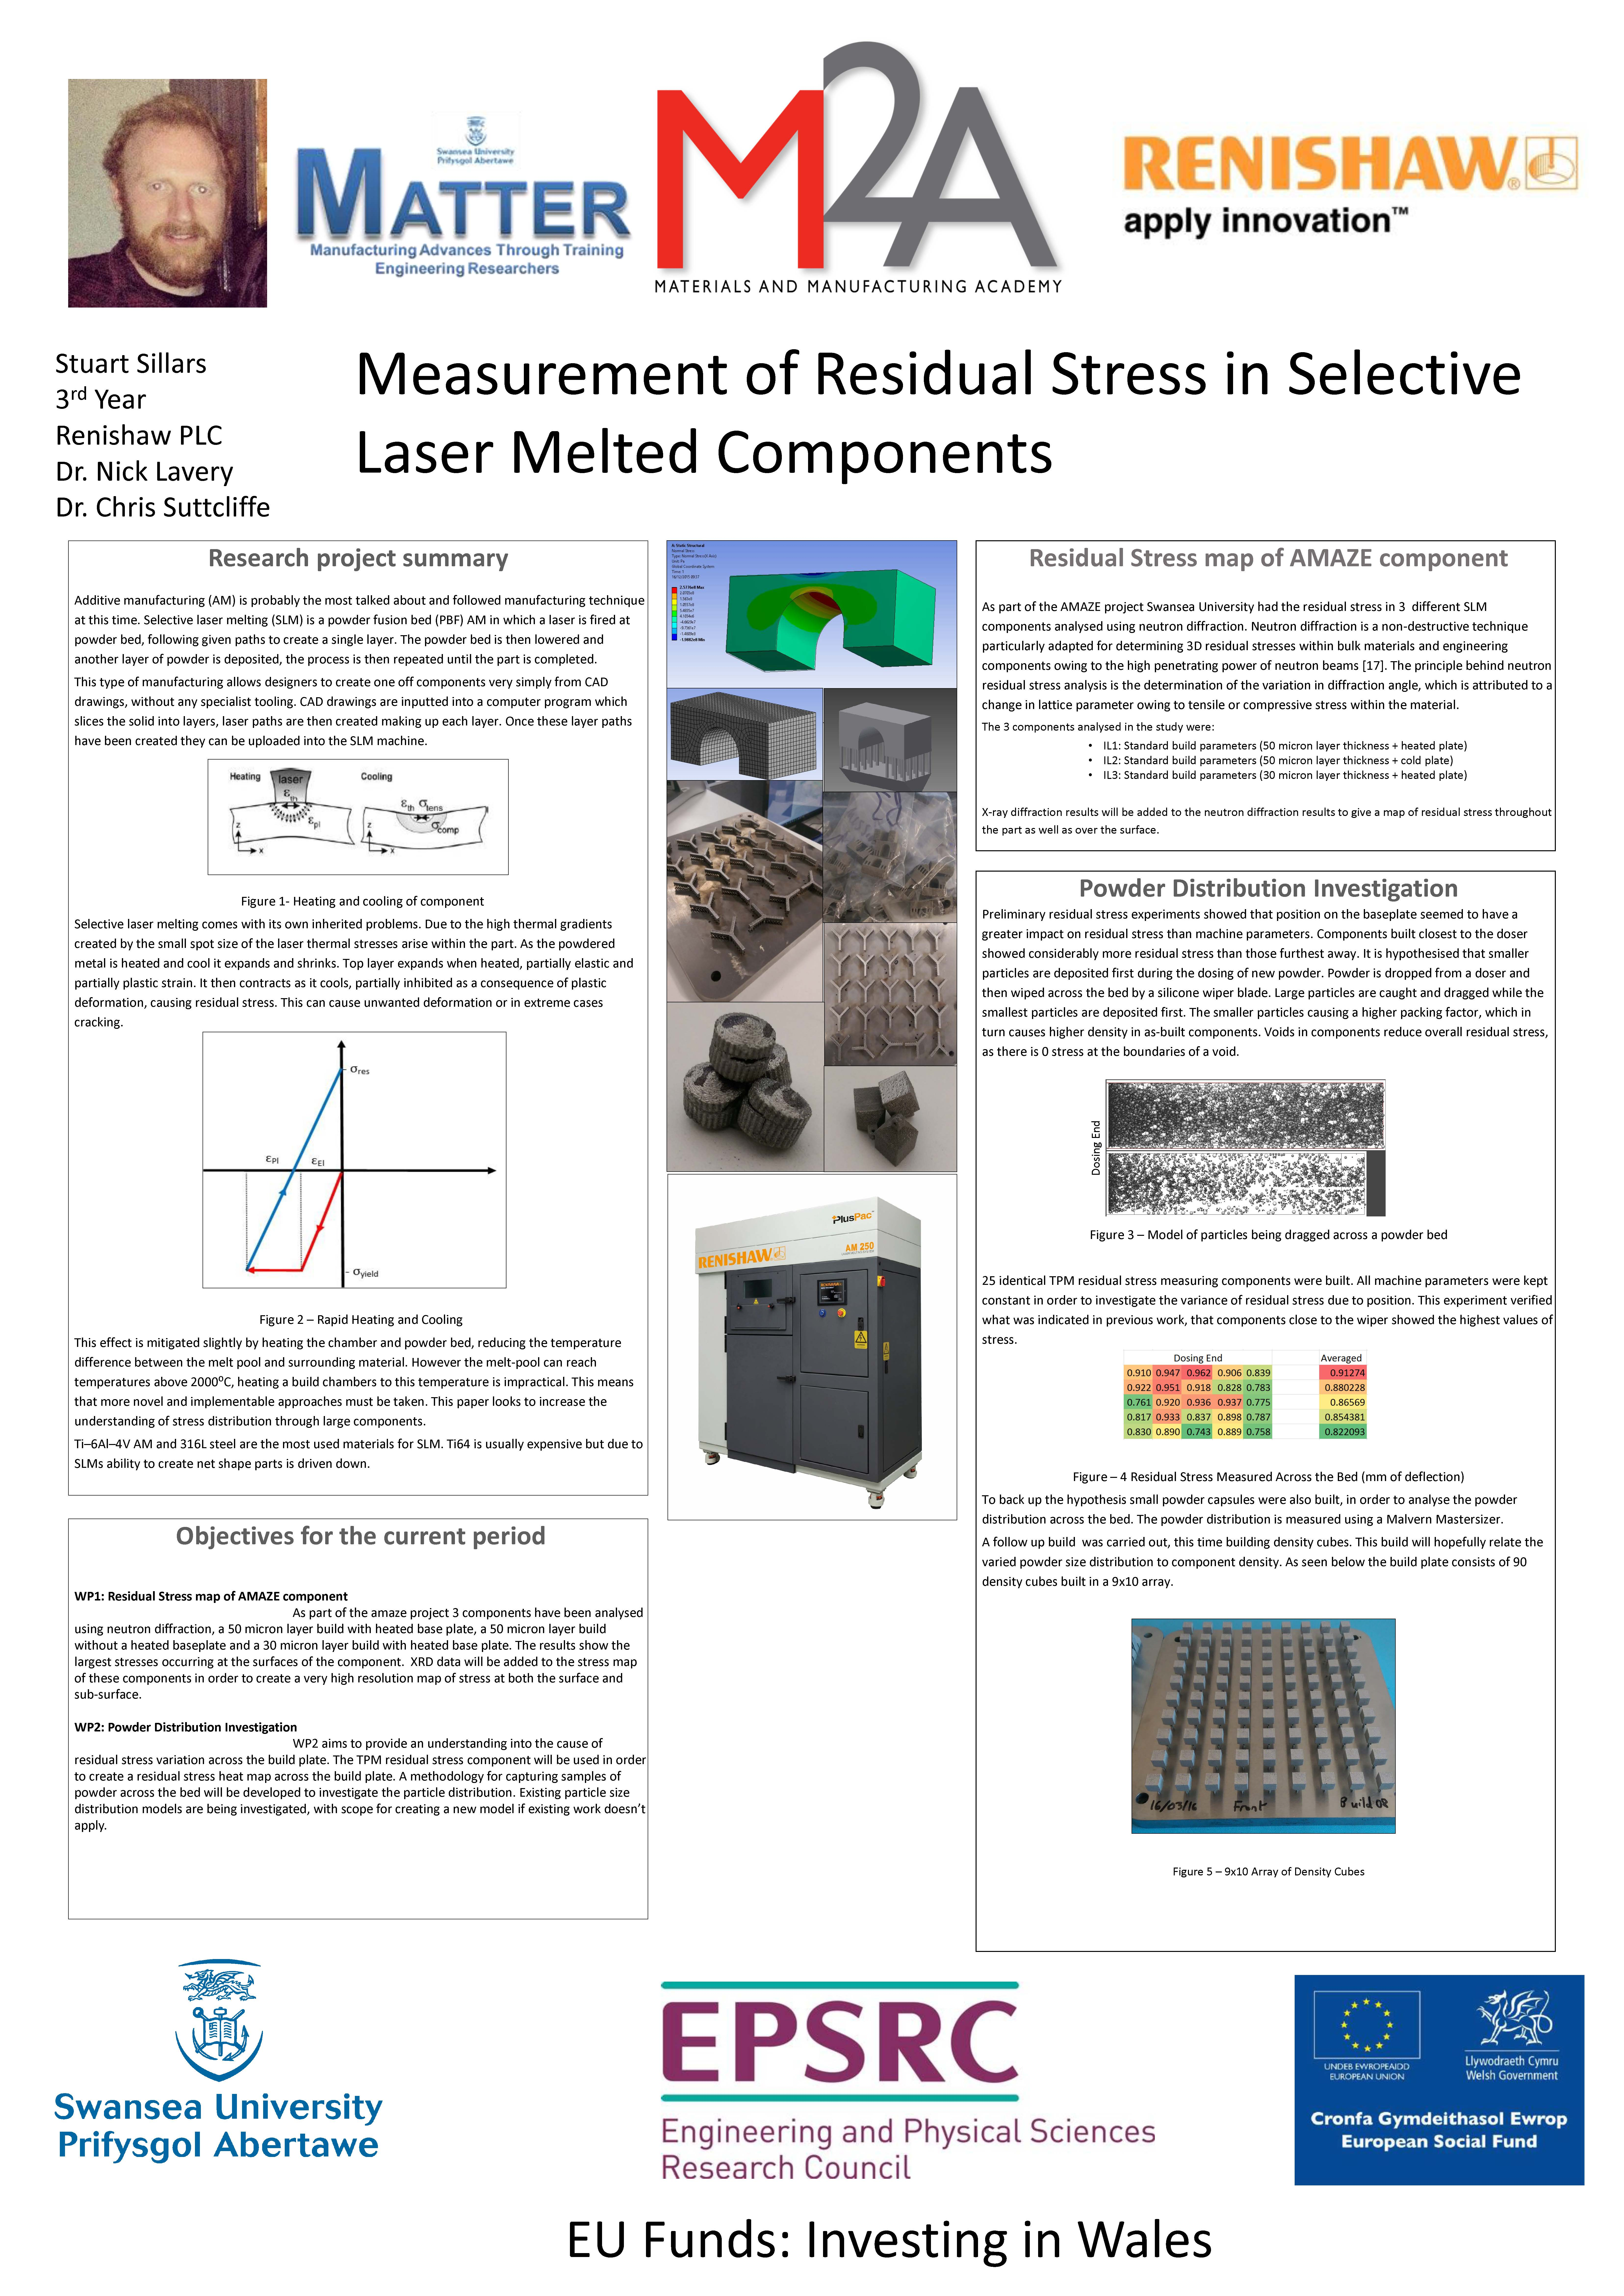 Measurement of Residual Stress in Selective Laser Melted Components